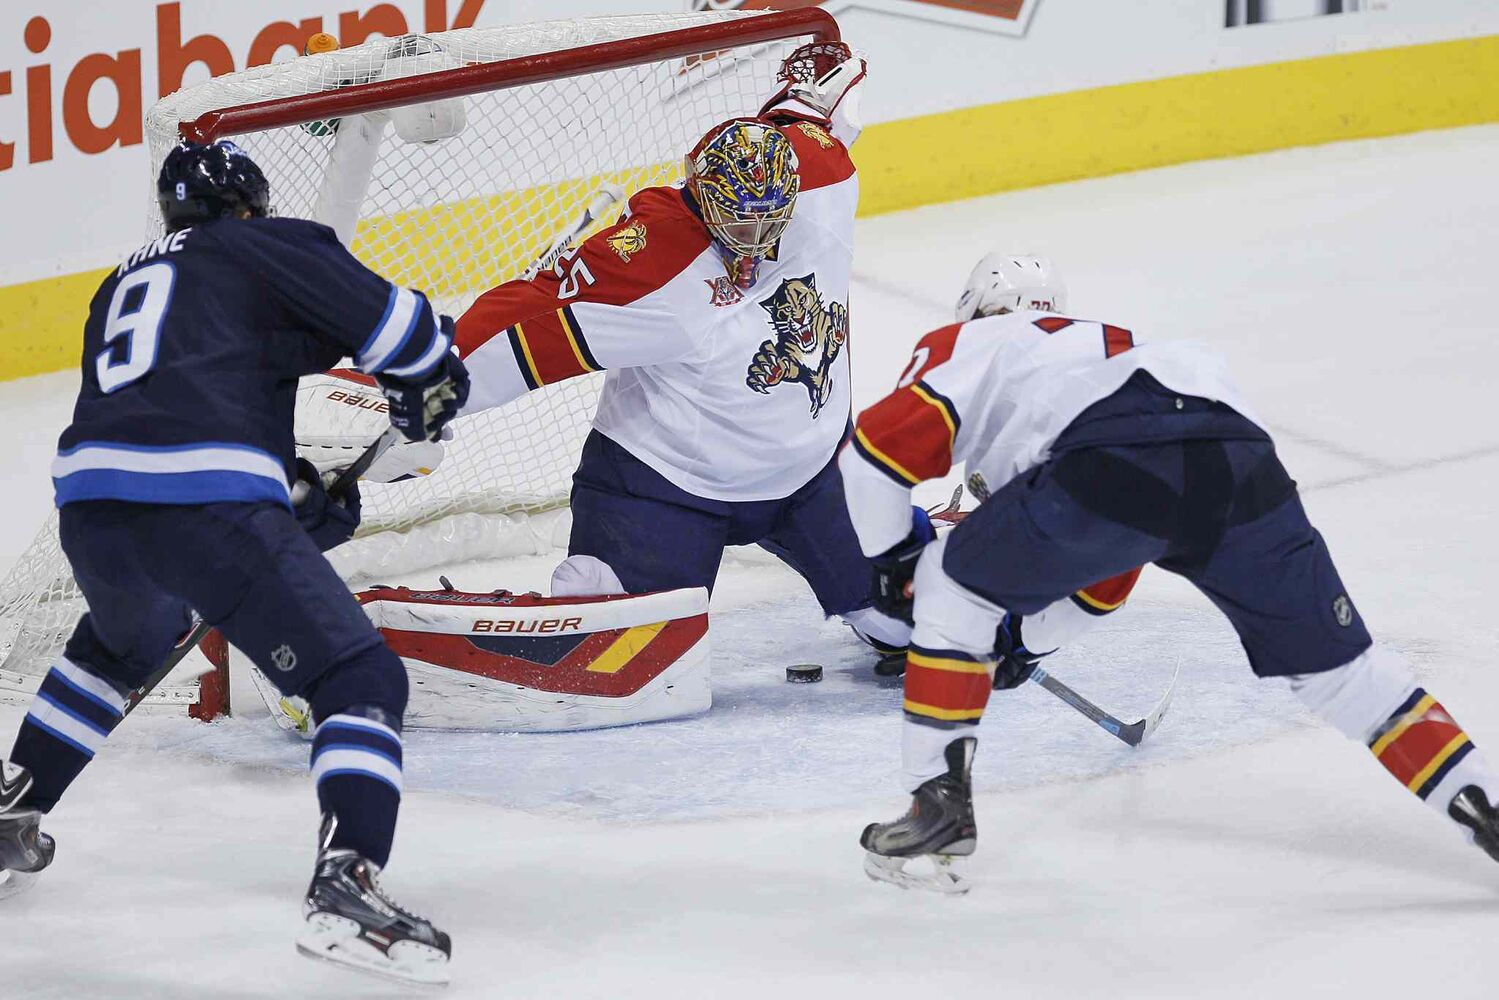 Florida Panthers' Tom Gilbert (77) tips the shot by Winnipeg Jets' Jacob Trouba (8) through the legs of goaltender Jacob Markstrom (25) as Jets' Evander Kane (9) looks on during the first period.